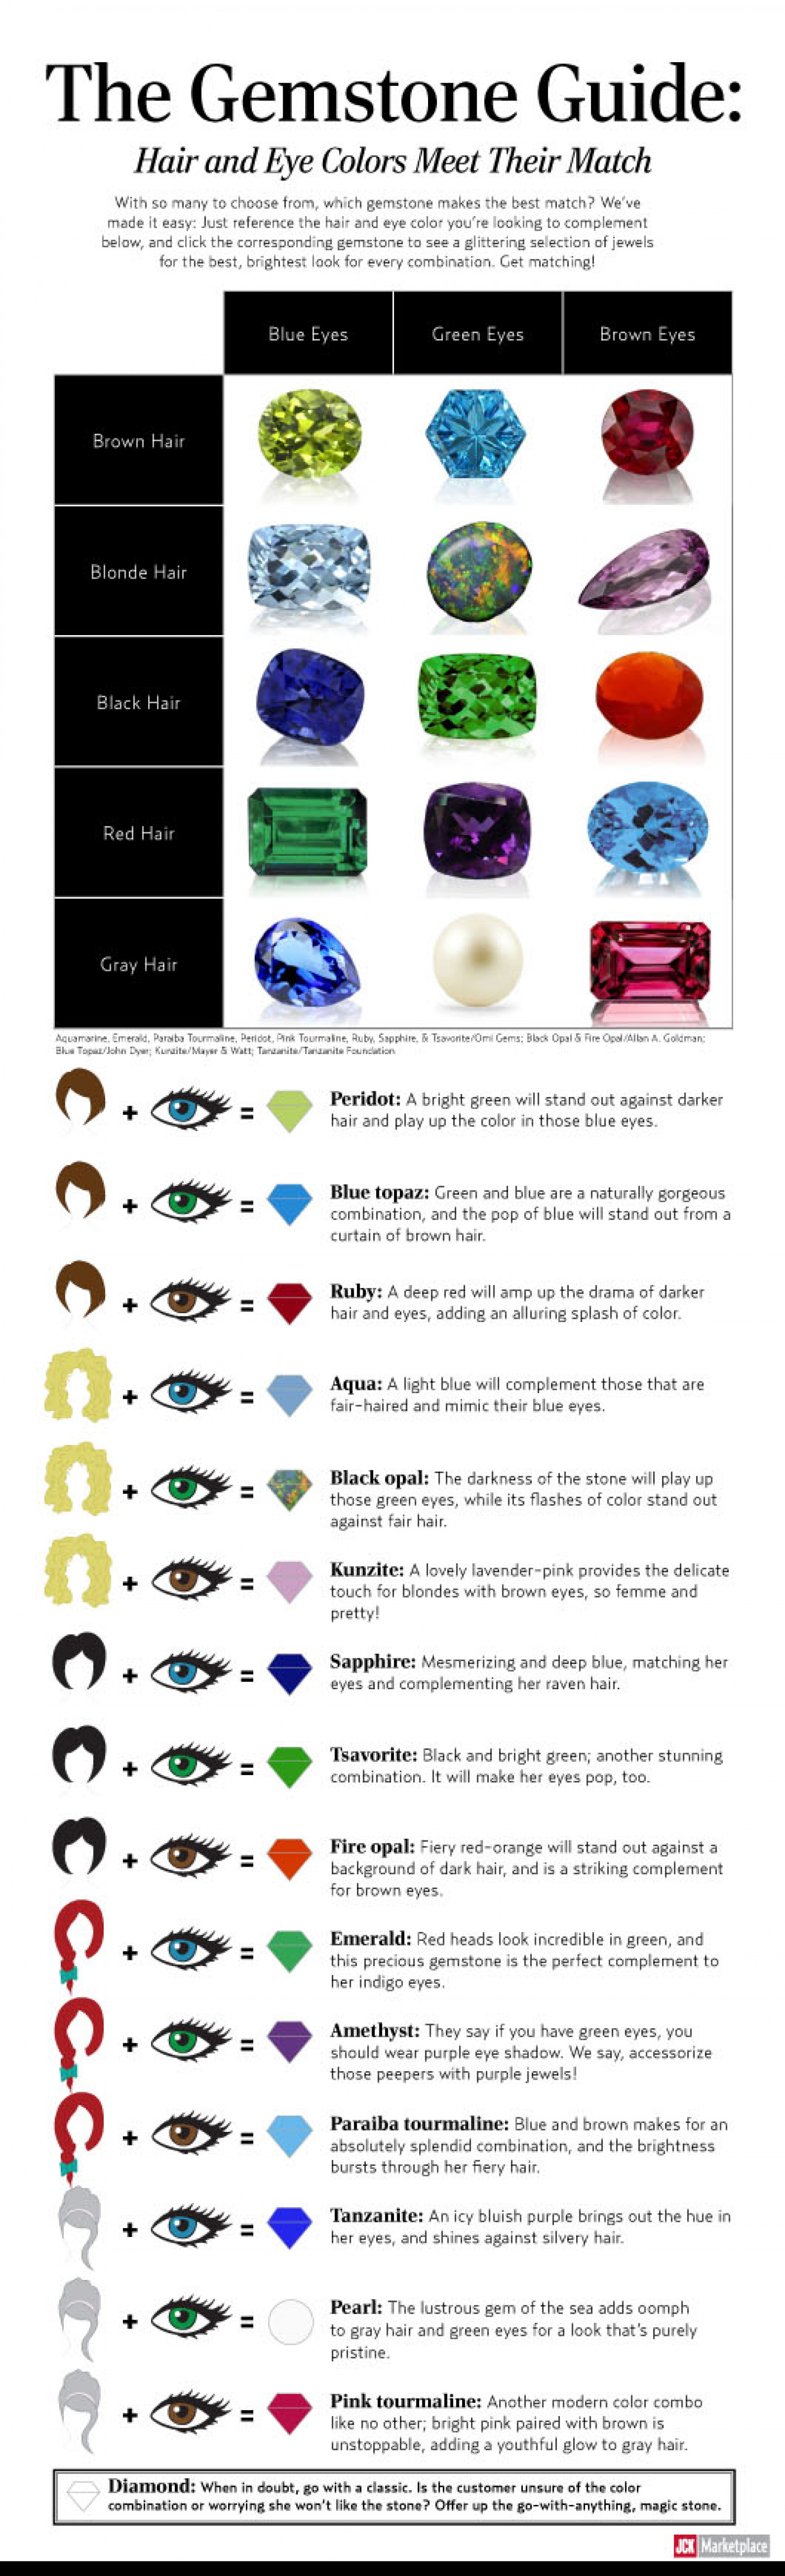 The Gemstone Guide: Hair and Eye Colors Meet Their Match Infographic